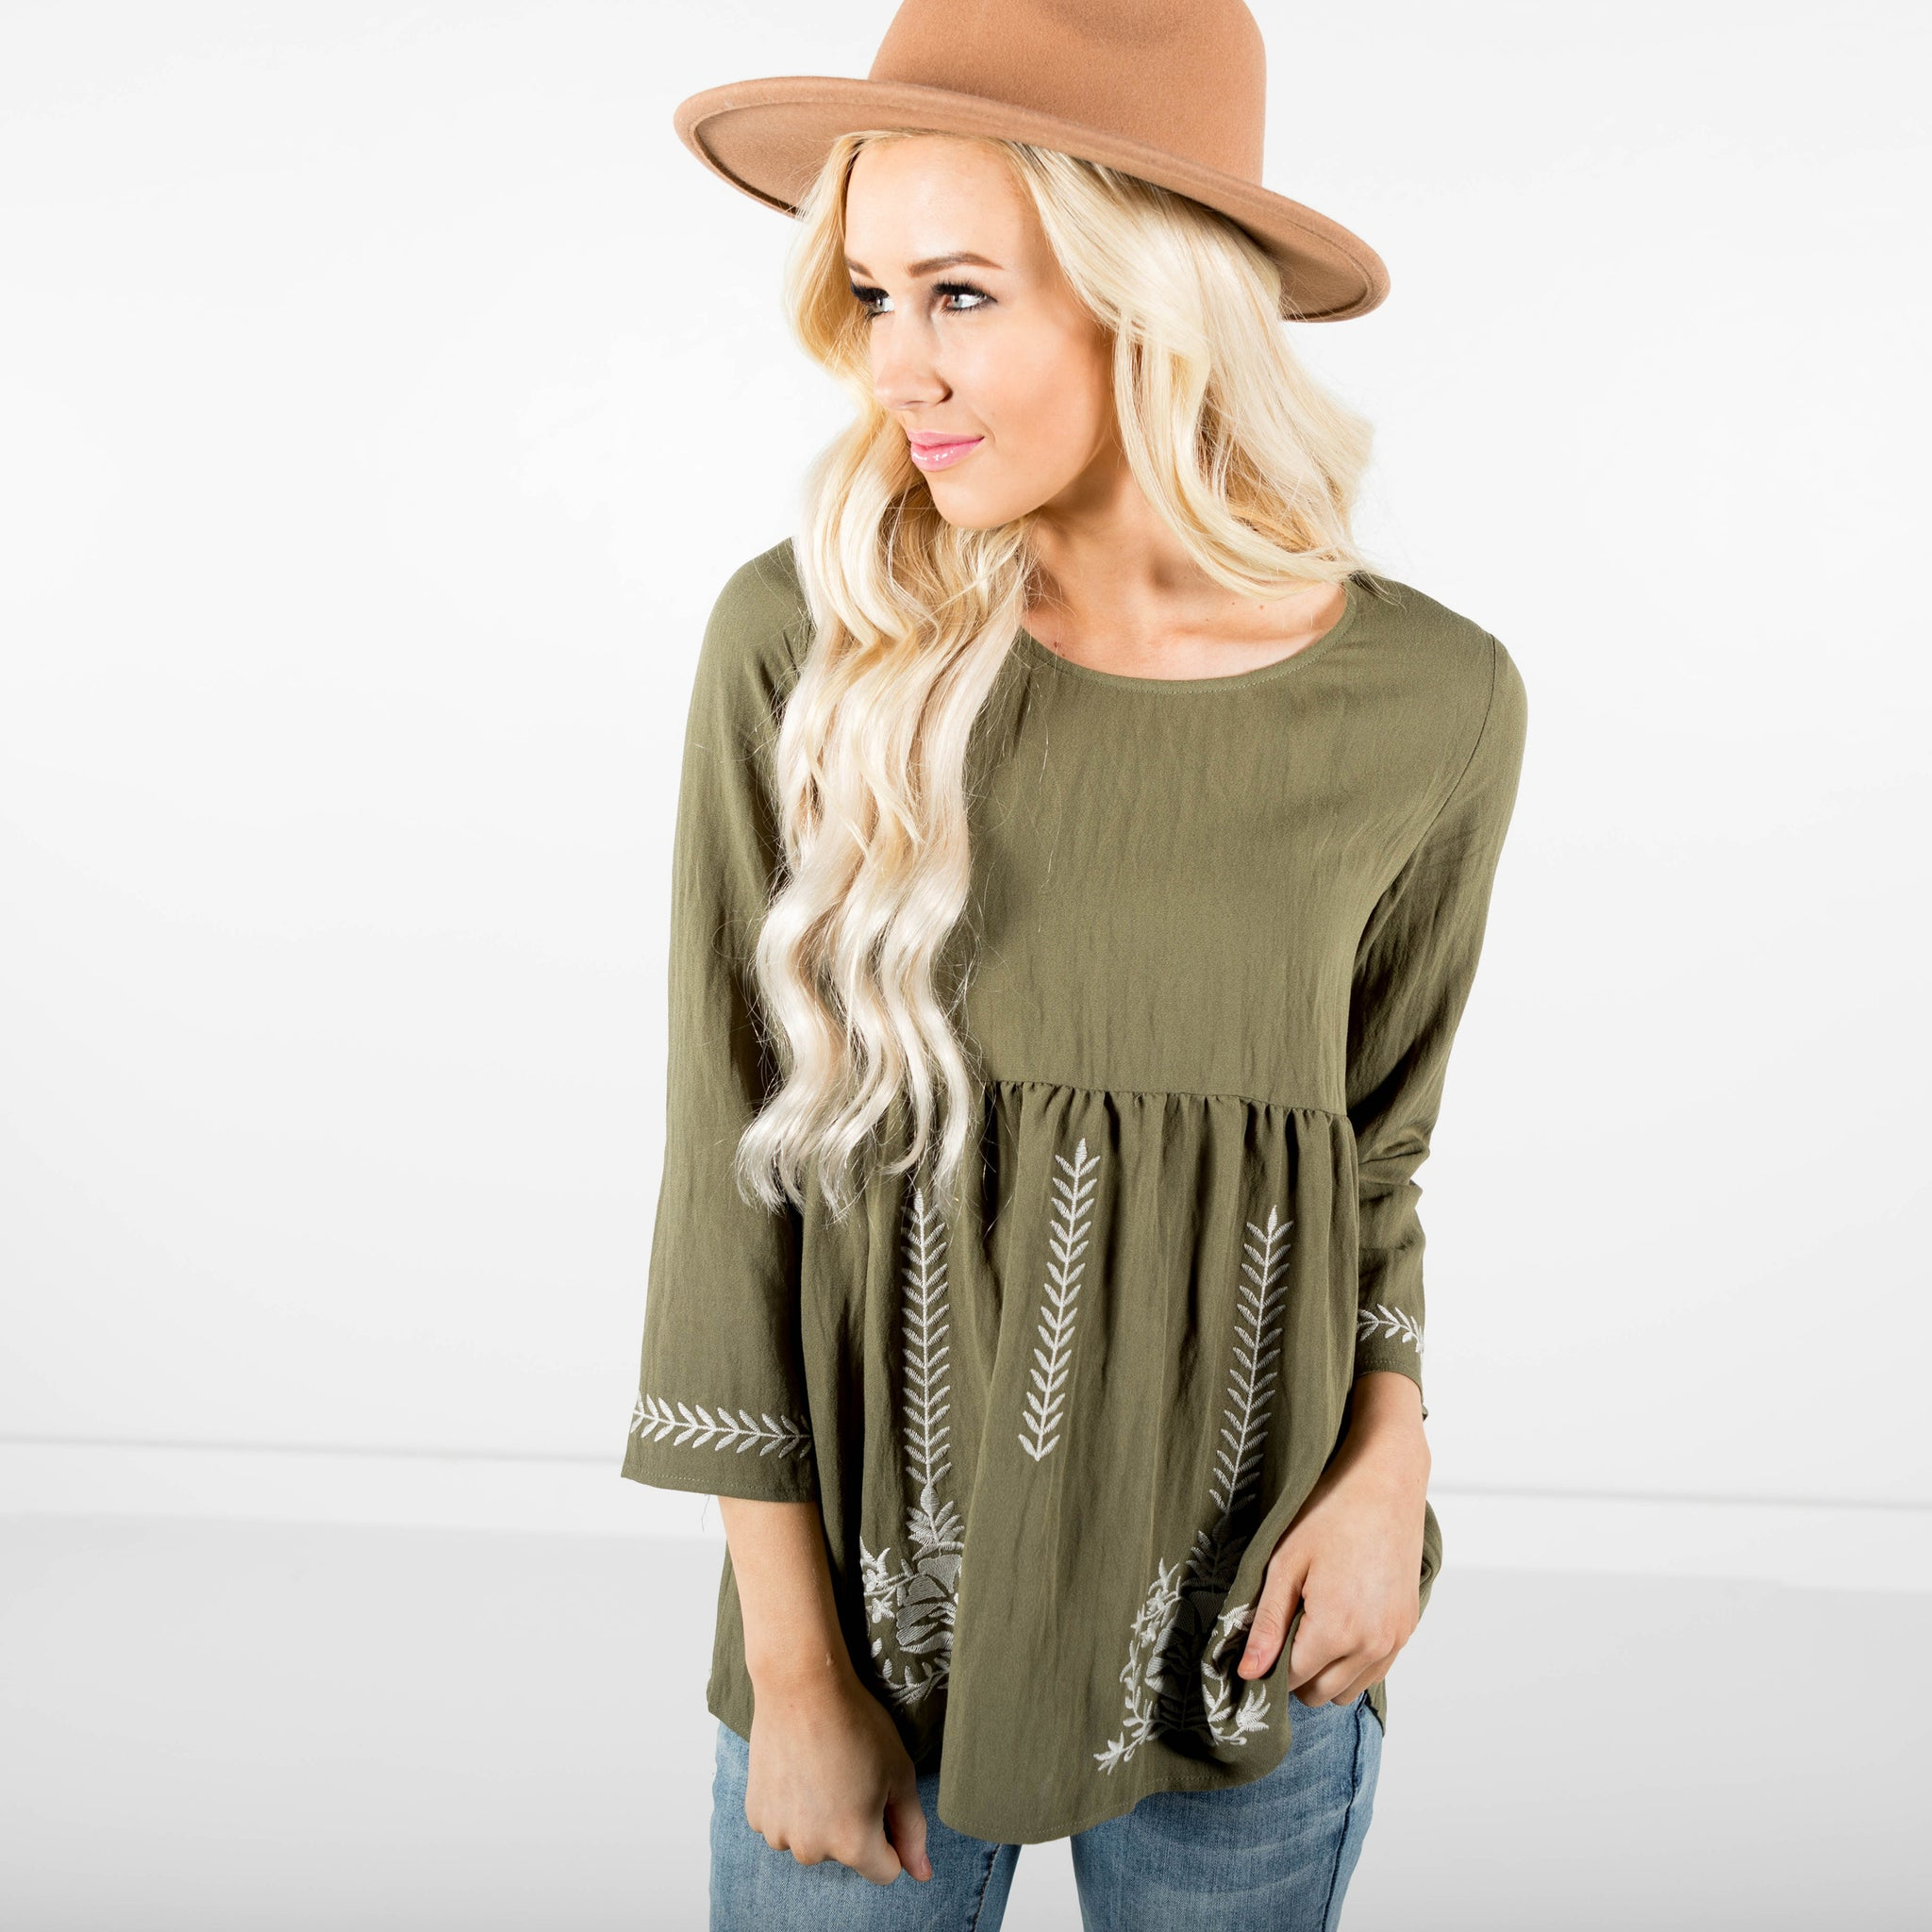 Knox Long Sleeve Top in Olive